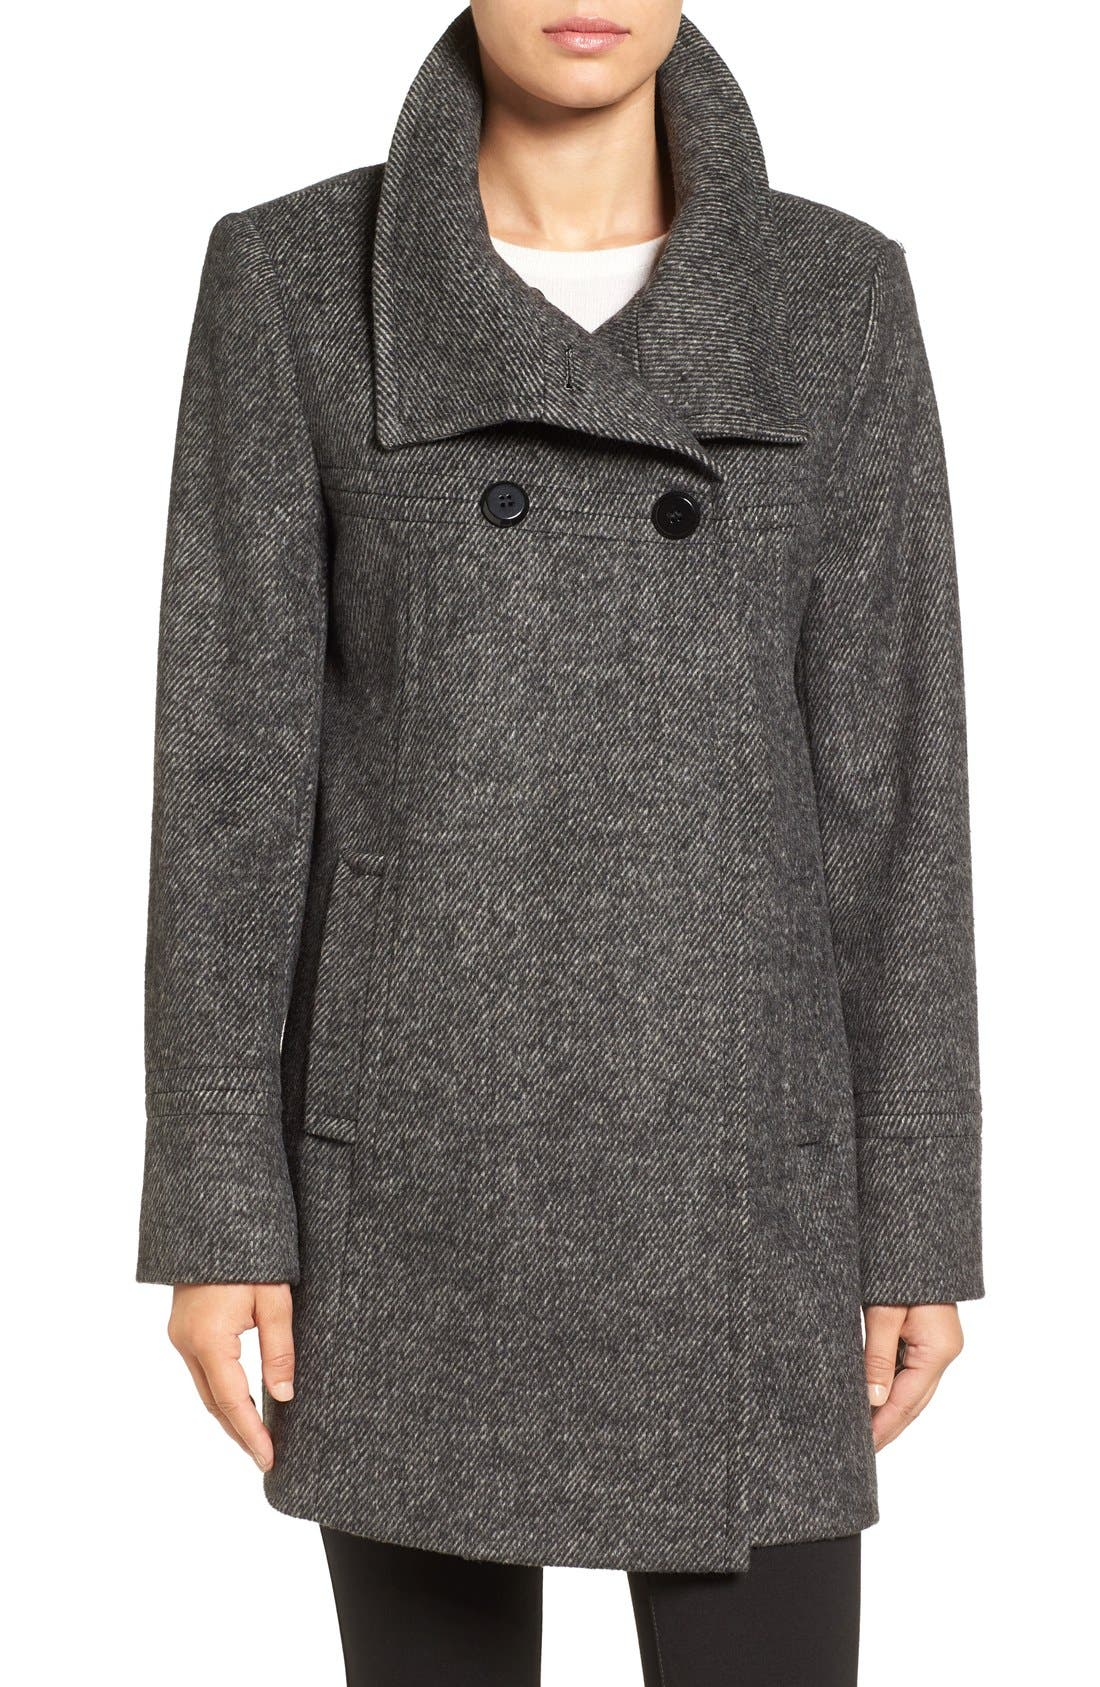 Double Breasted Swing Coat,                         Main,                         color, 015